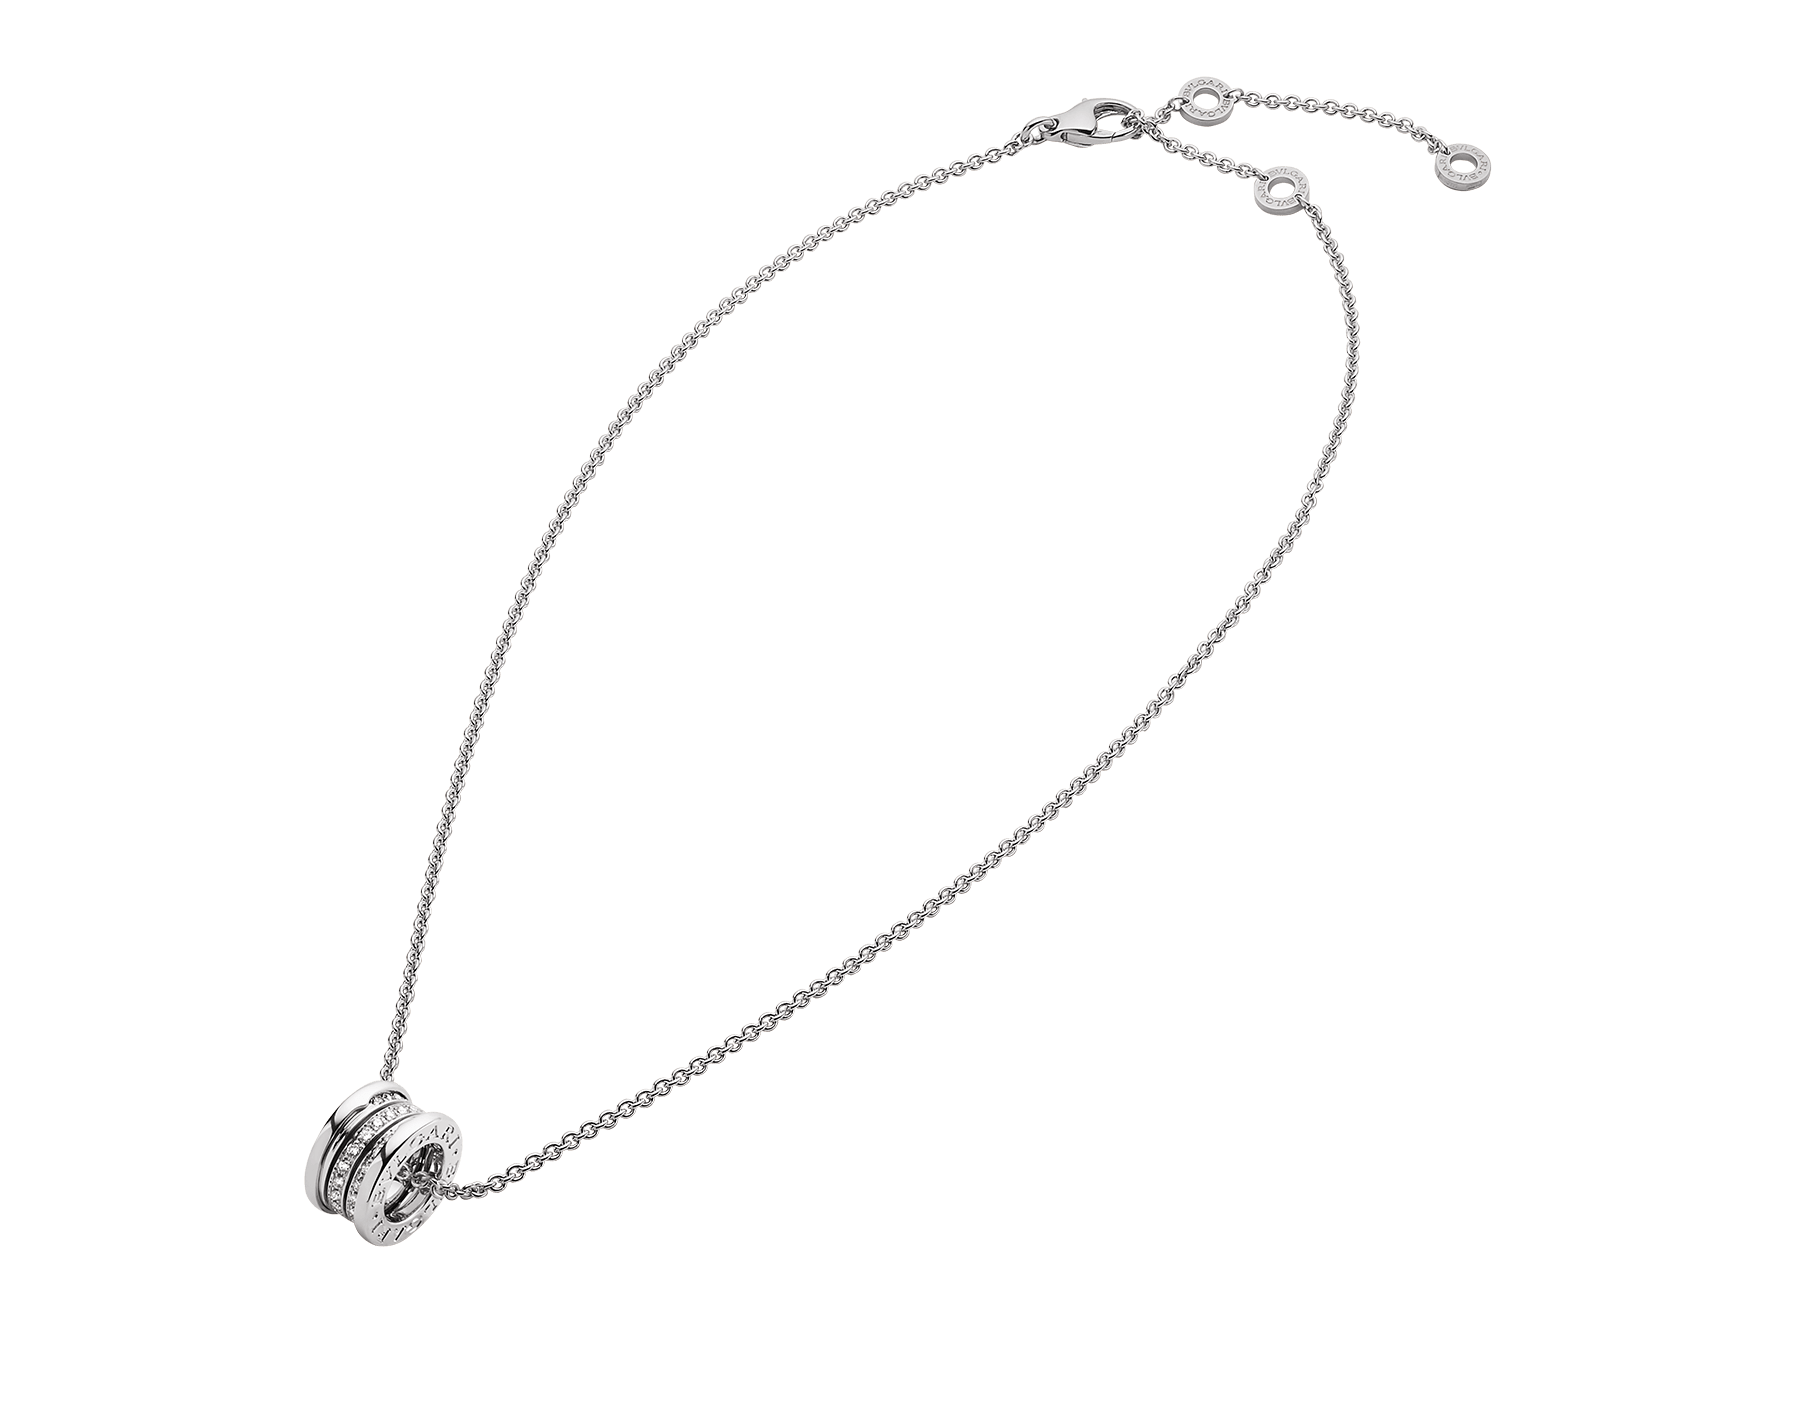 B.zero1 18 kt white gold necklace with small round pendant in 18kt white gold, set with pavé diamonds on the spiral. 352816 image 2